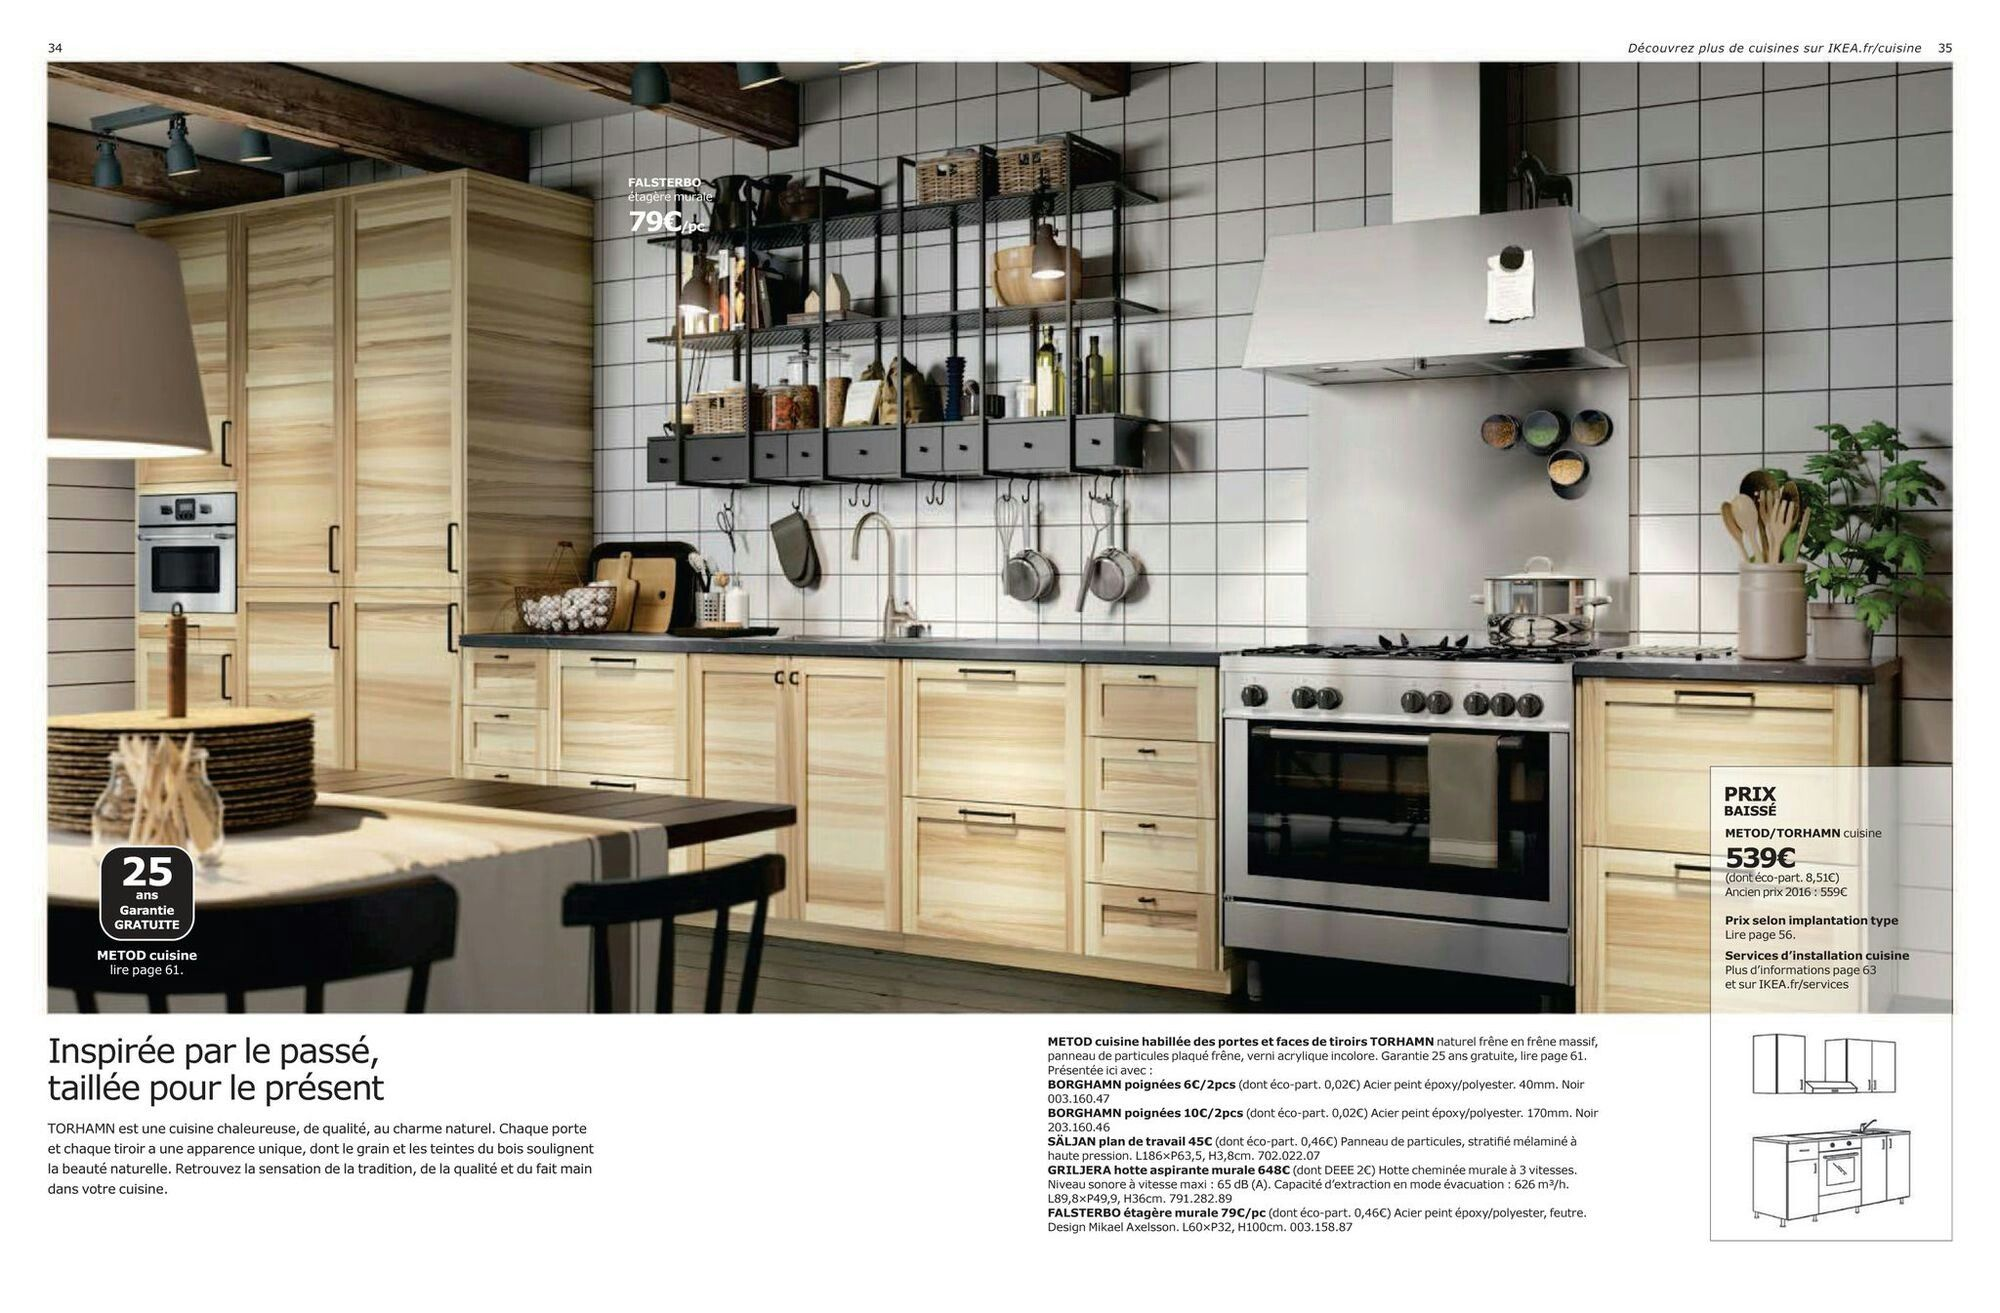 ikea torhamn kitchen design cuisine